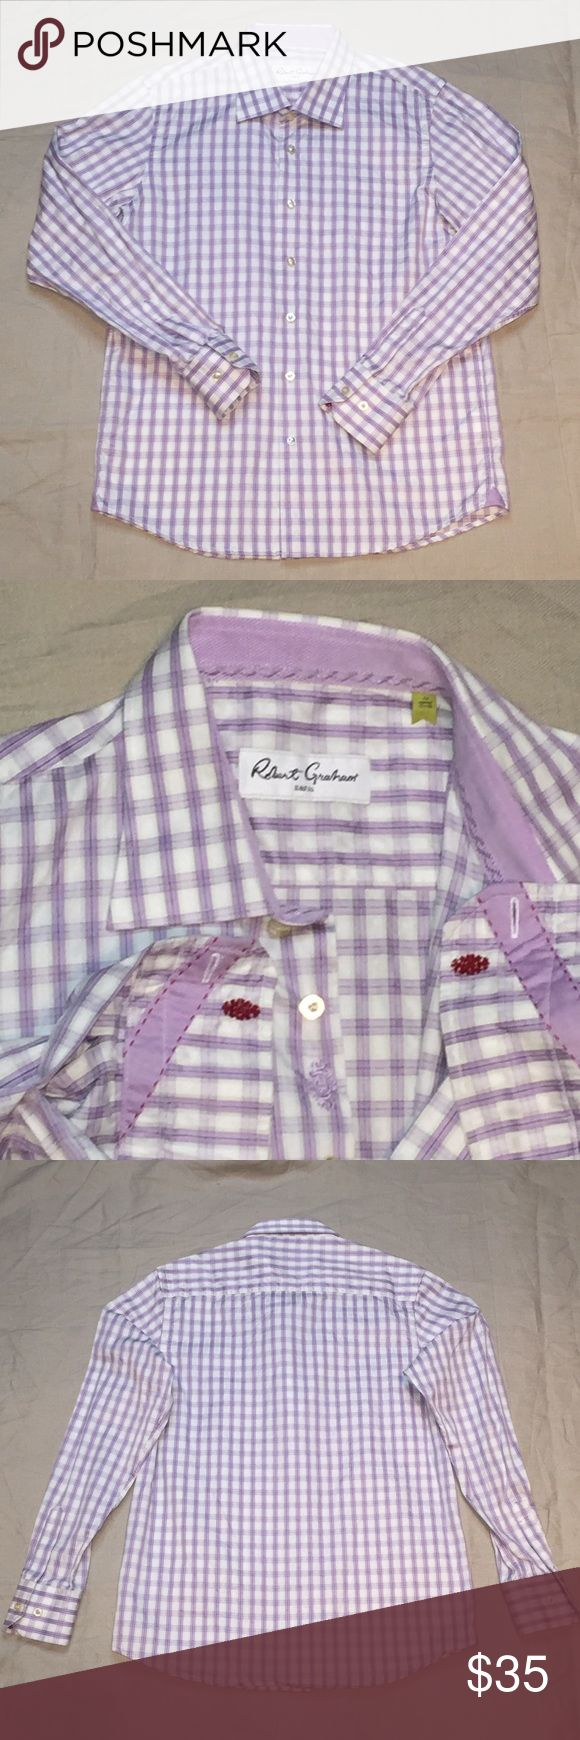 Boy's Robert Graham plaid button down dress shirt Boy's Robert Graham dress shirt in white, lilac, and blue plaid. Embroidered logo on button placket and inside each cuff. New condition. Size 10/12. Robert Graham Shirts & Tops Button Down Shirts